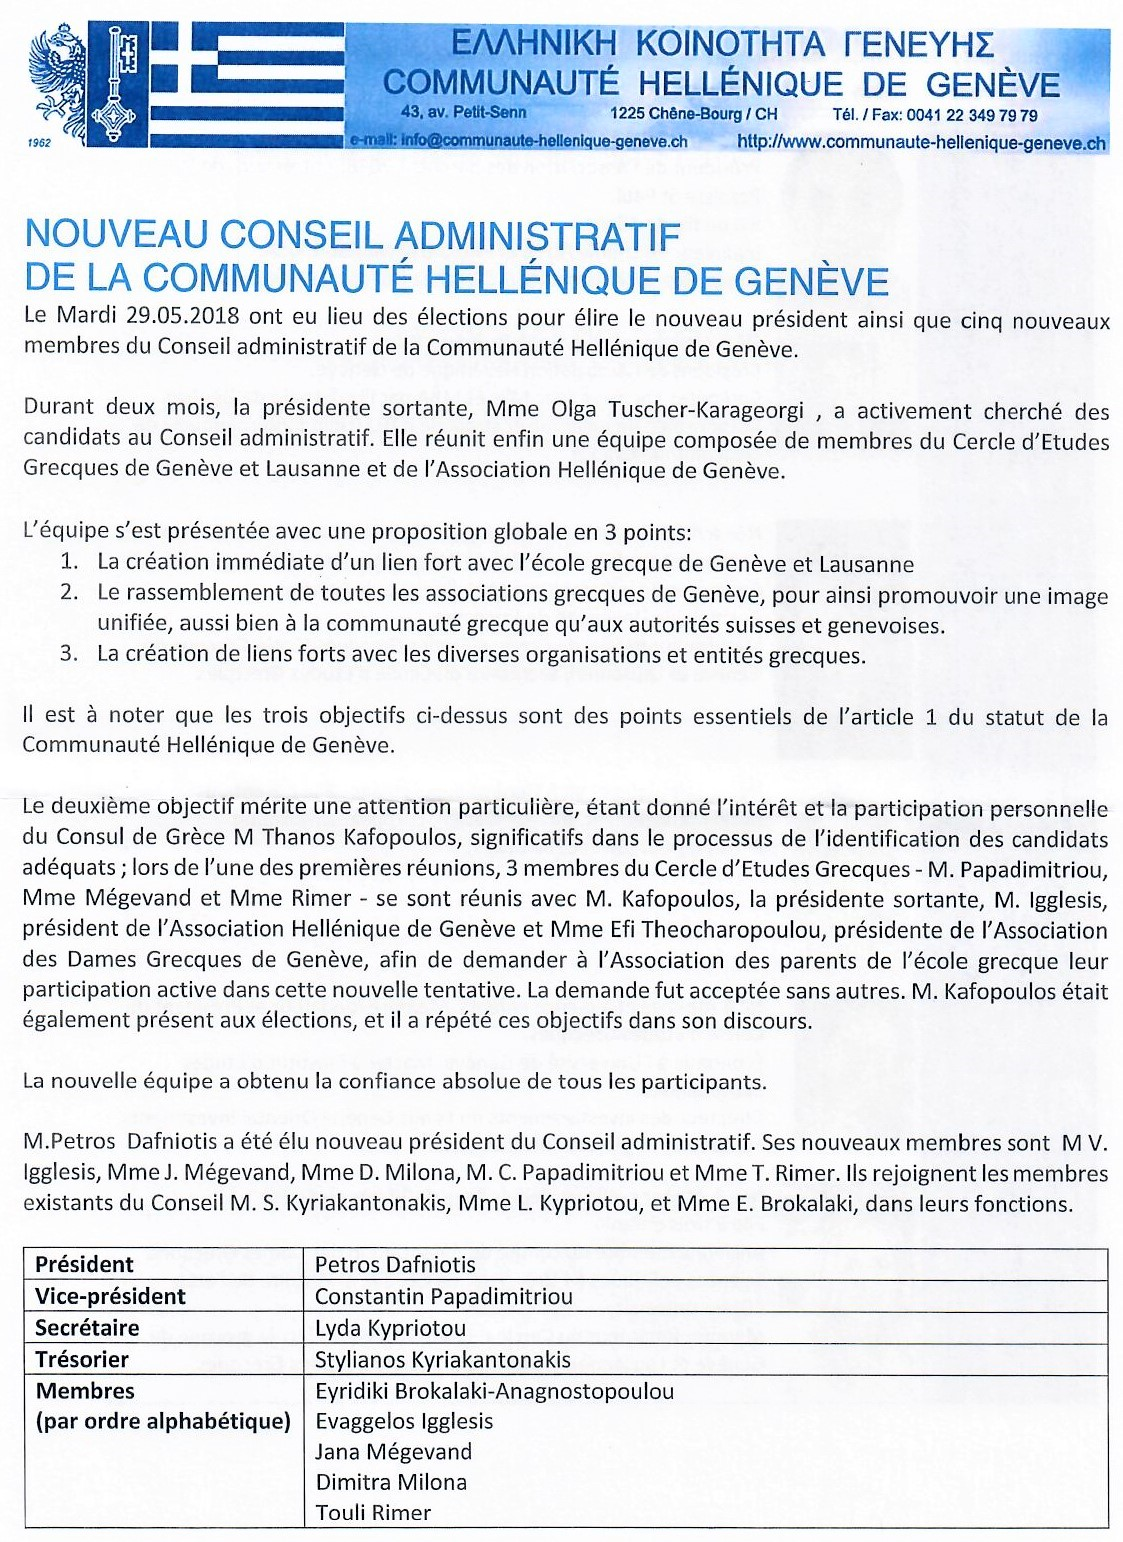 http://www.communaute-hellenique-geneve.ch/images/stories/2018/2018%20ds%20fr1.jpg